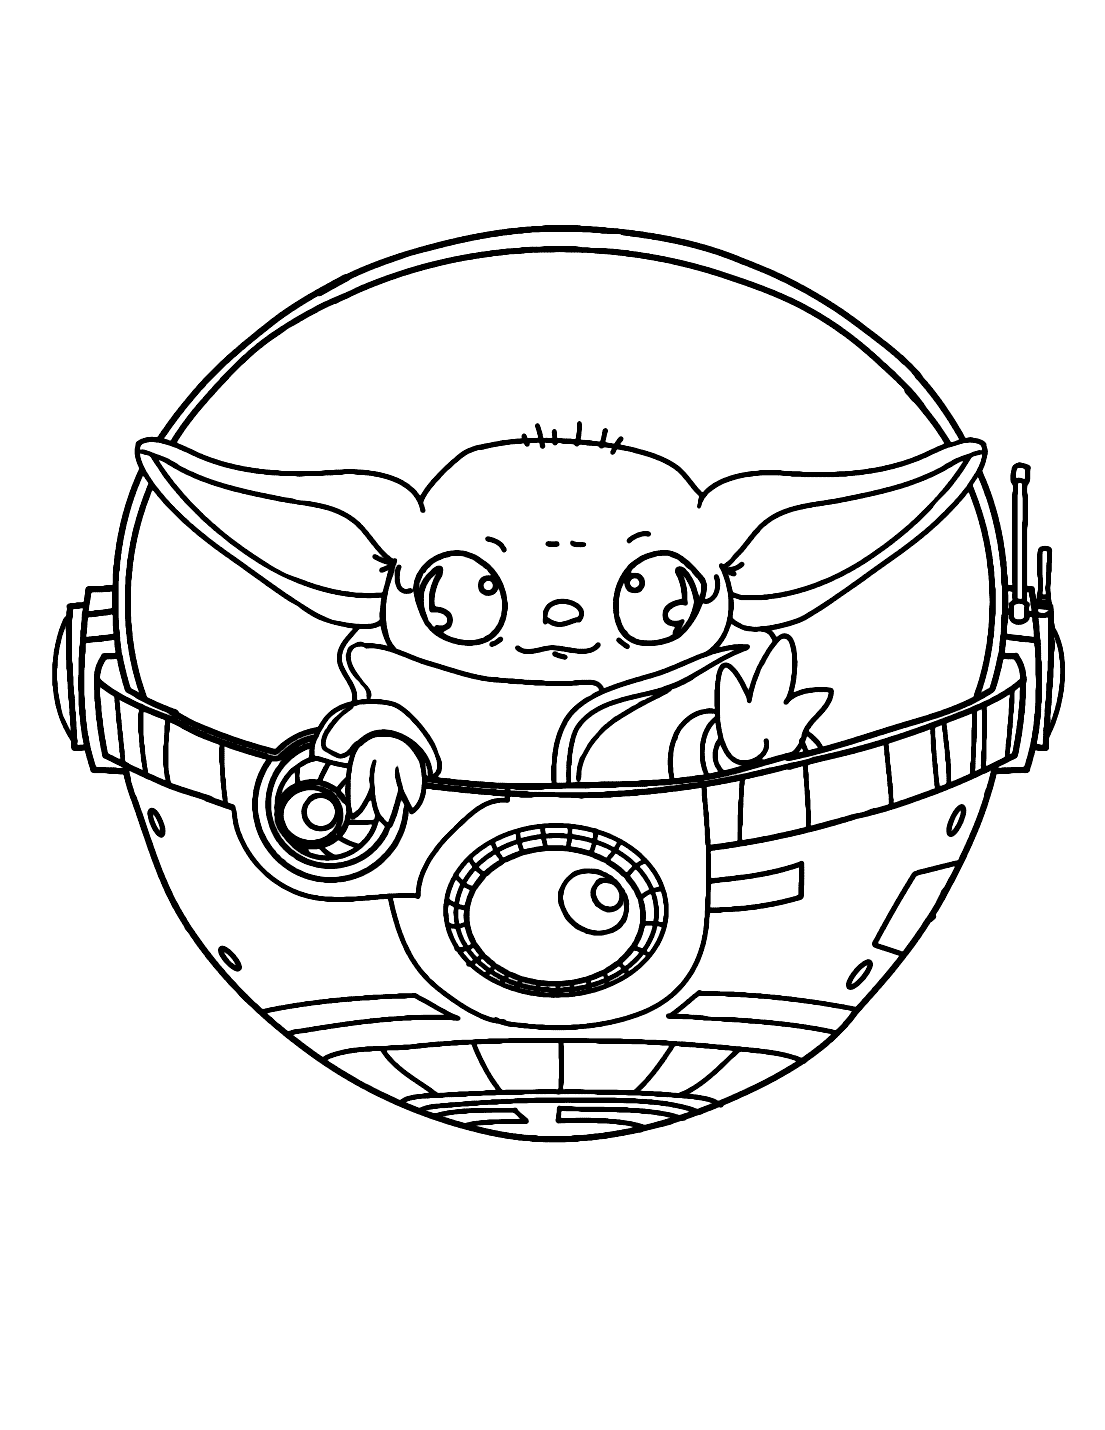 Yoda Baby Carriage Coloring Page